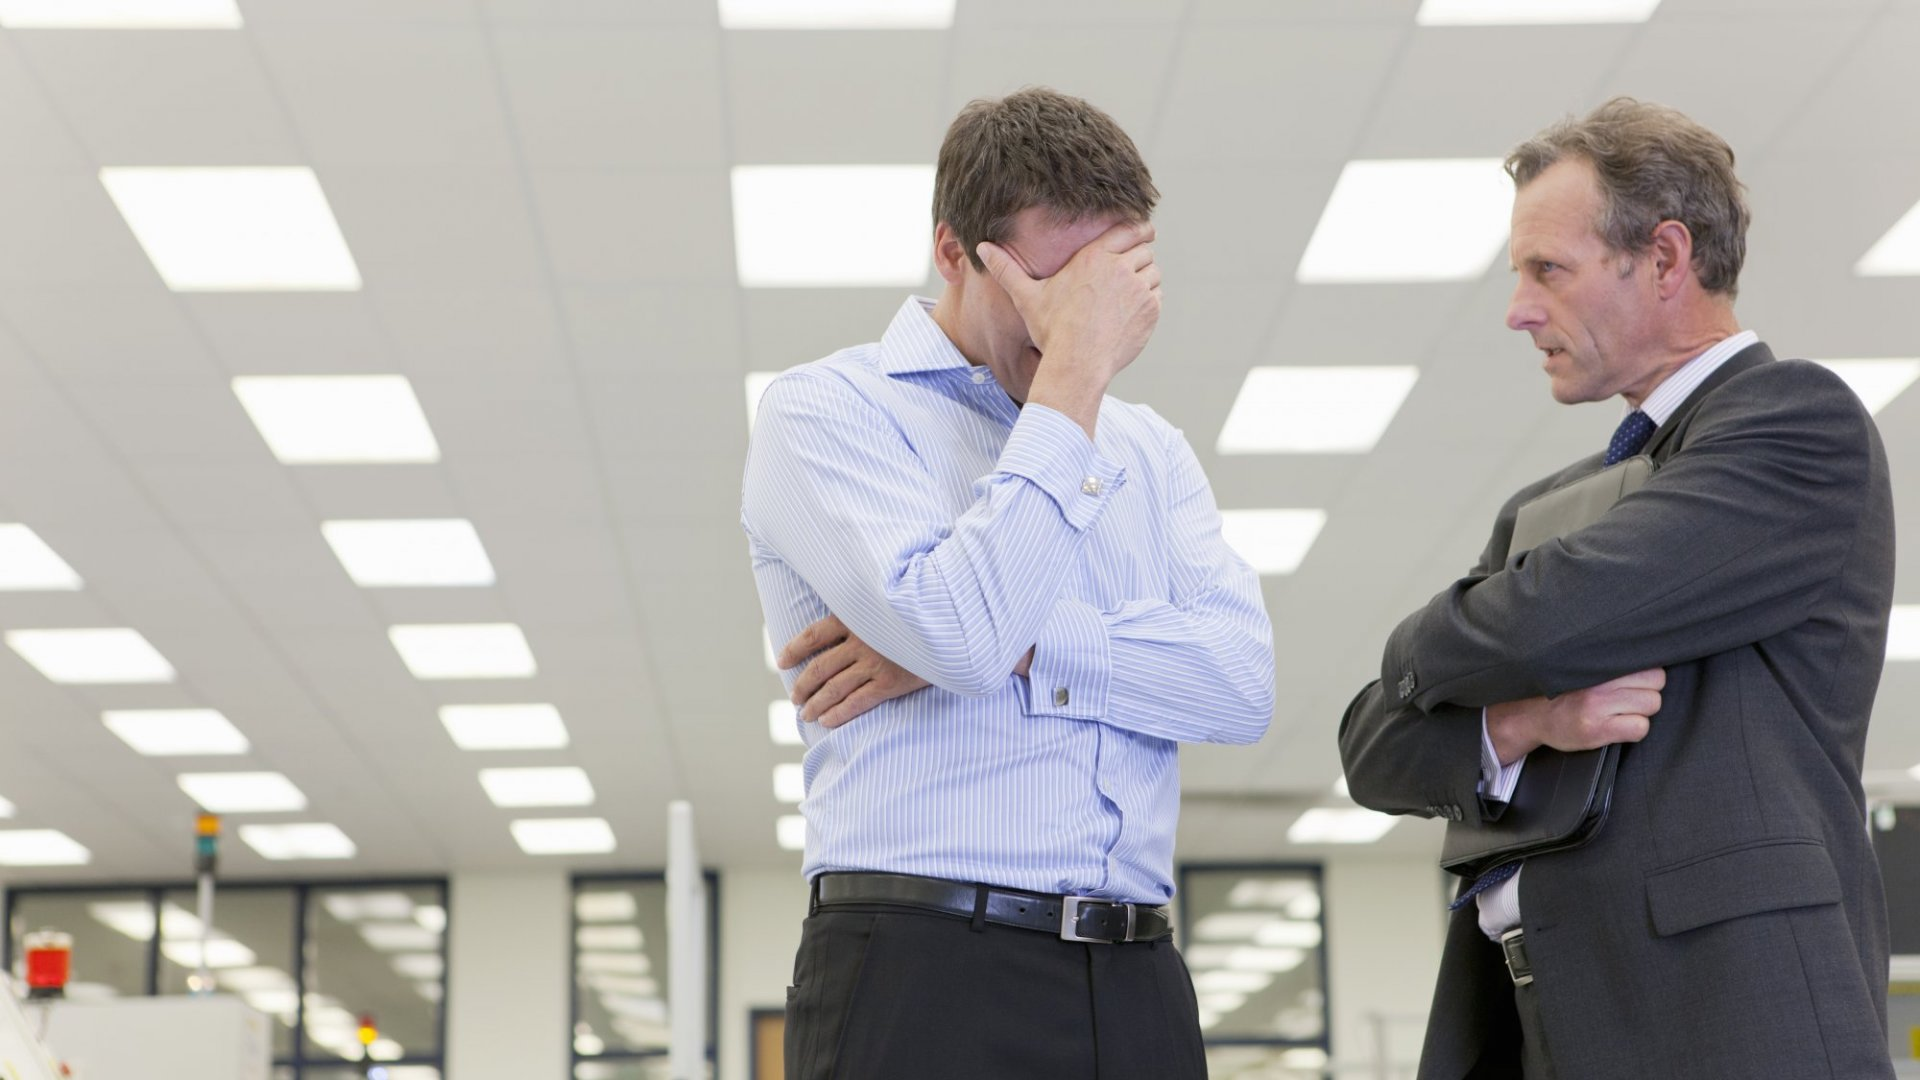 How to Survive a Negative Work Environment